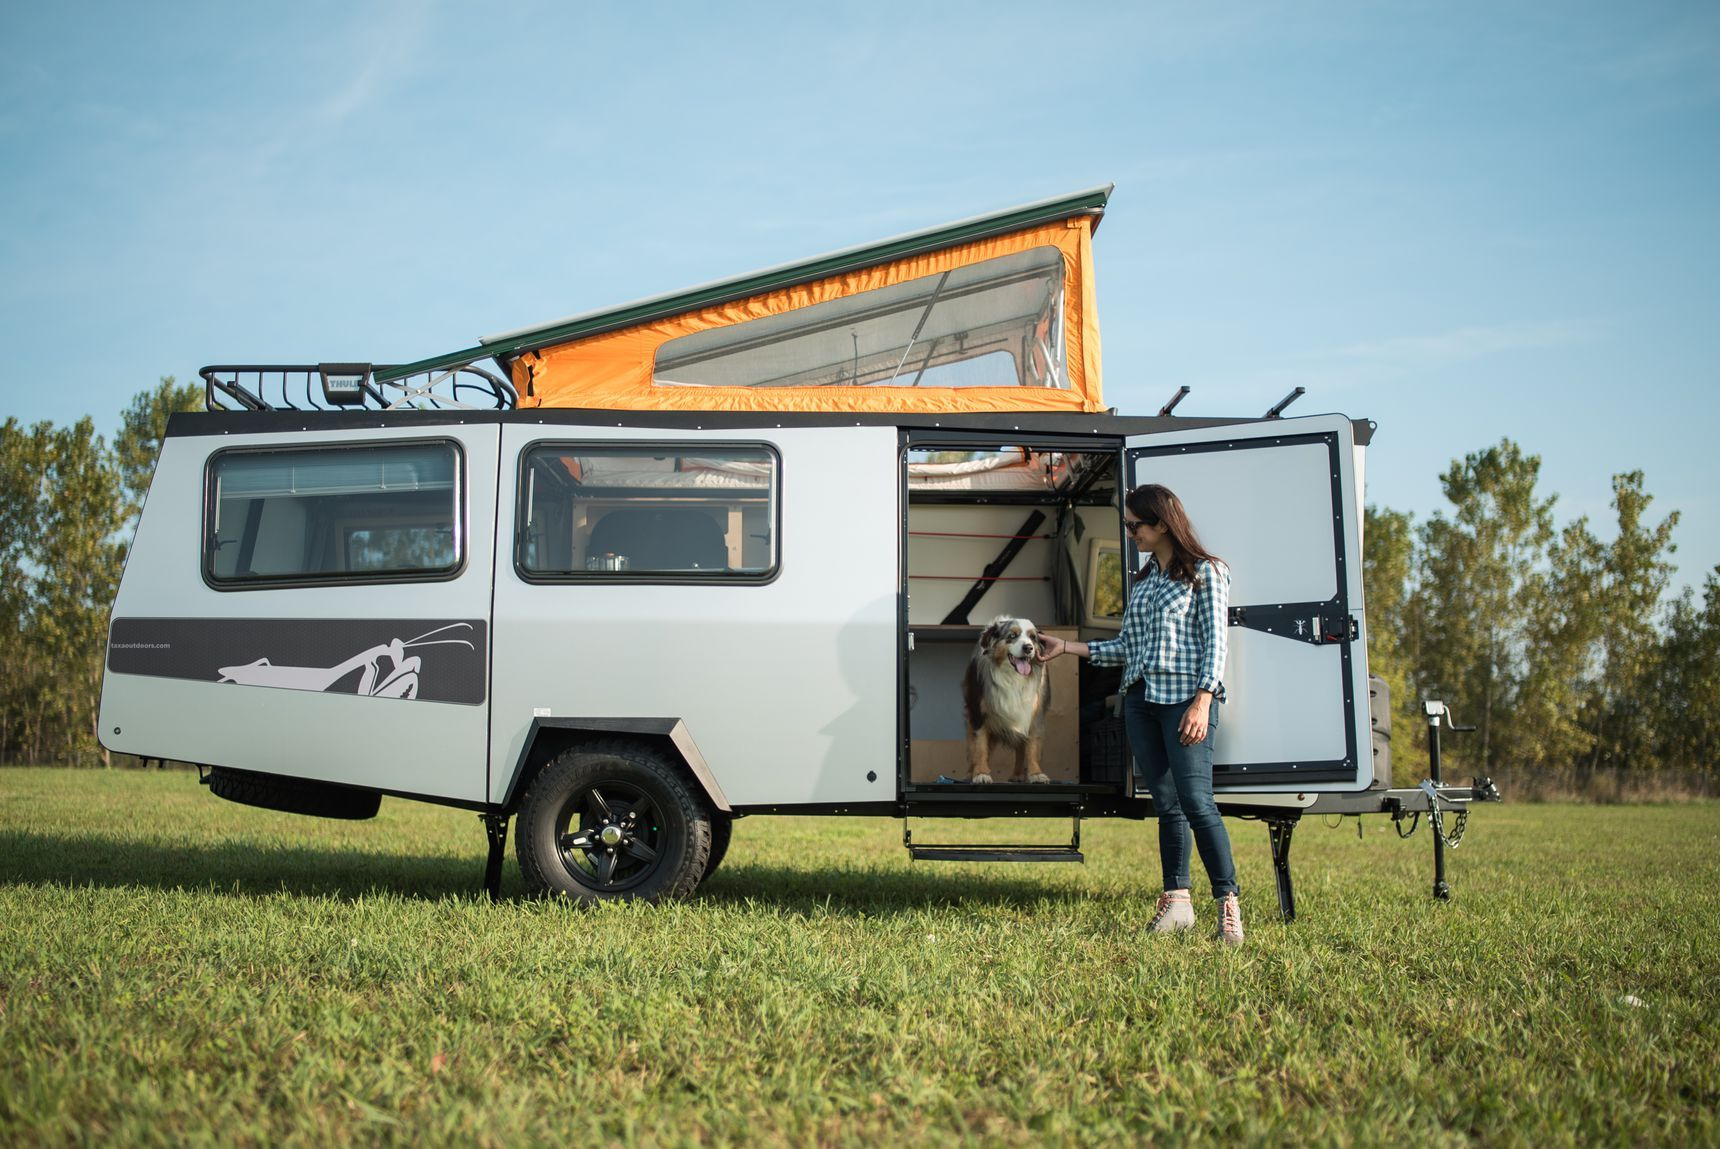 Compact Trailer Can Sleep 4 And Fit In Your Garage Small Travel